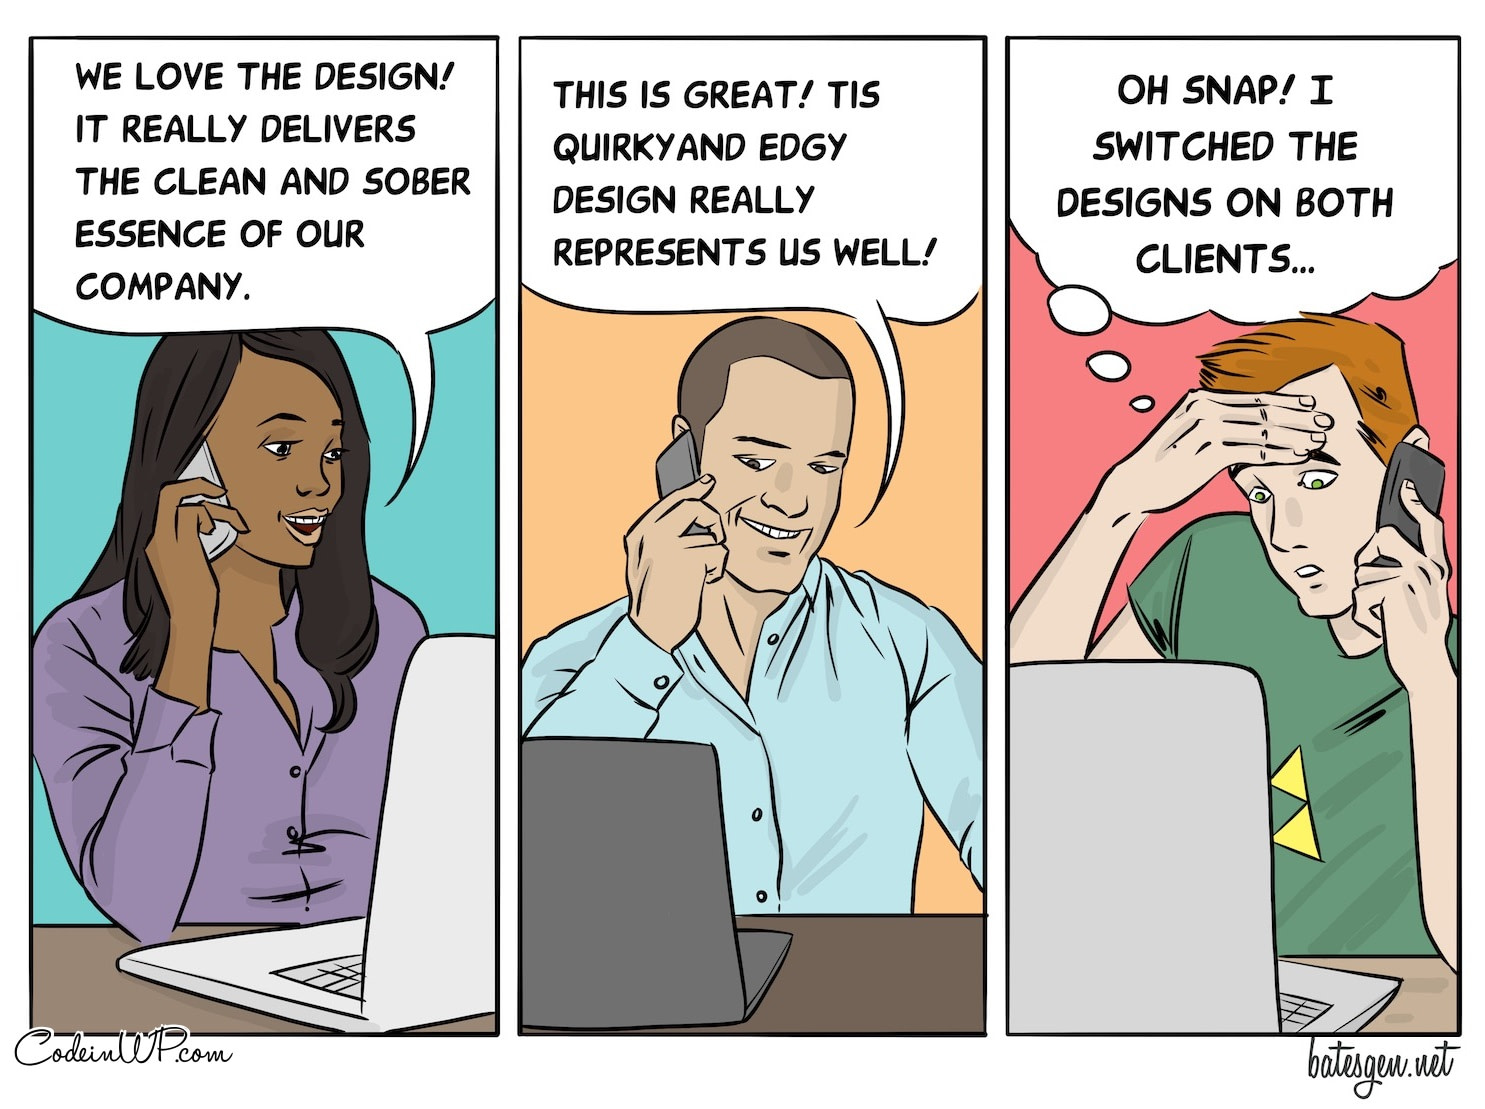 The happy designer is the one who makes good mistakes